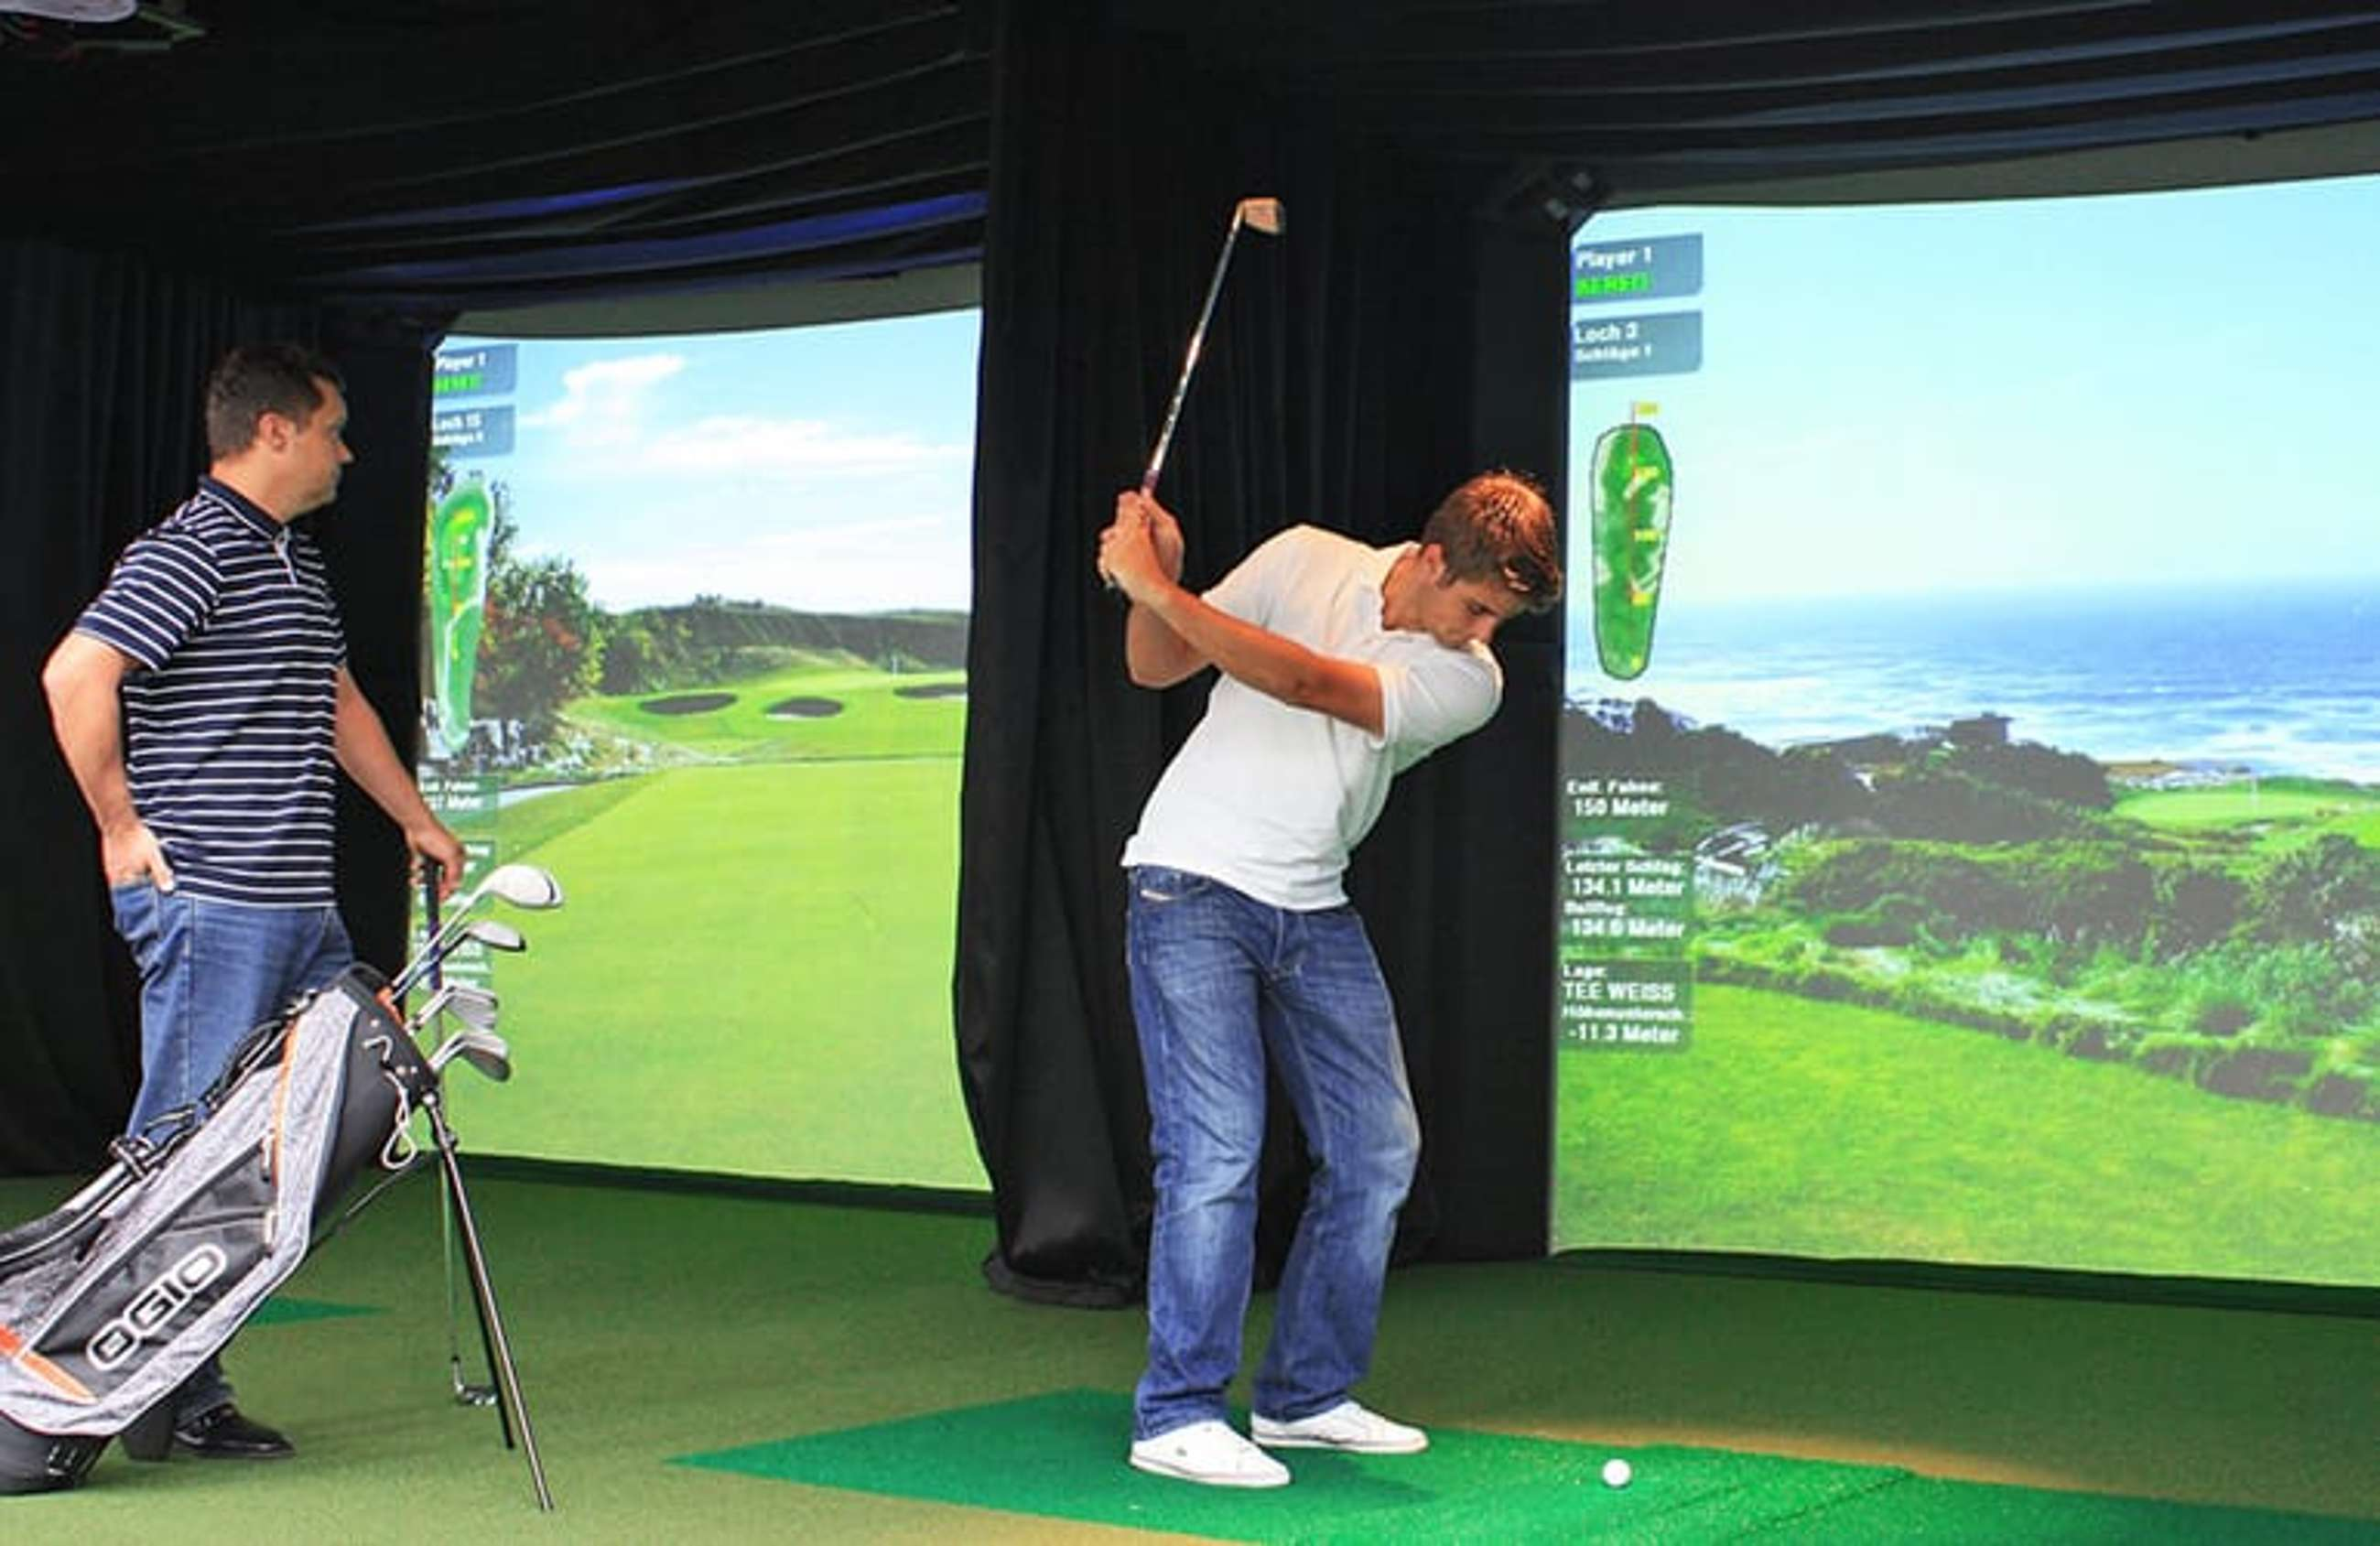 High-Definition Indoor Golf - The Golfers - Indoorgolf in Malans